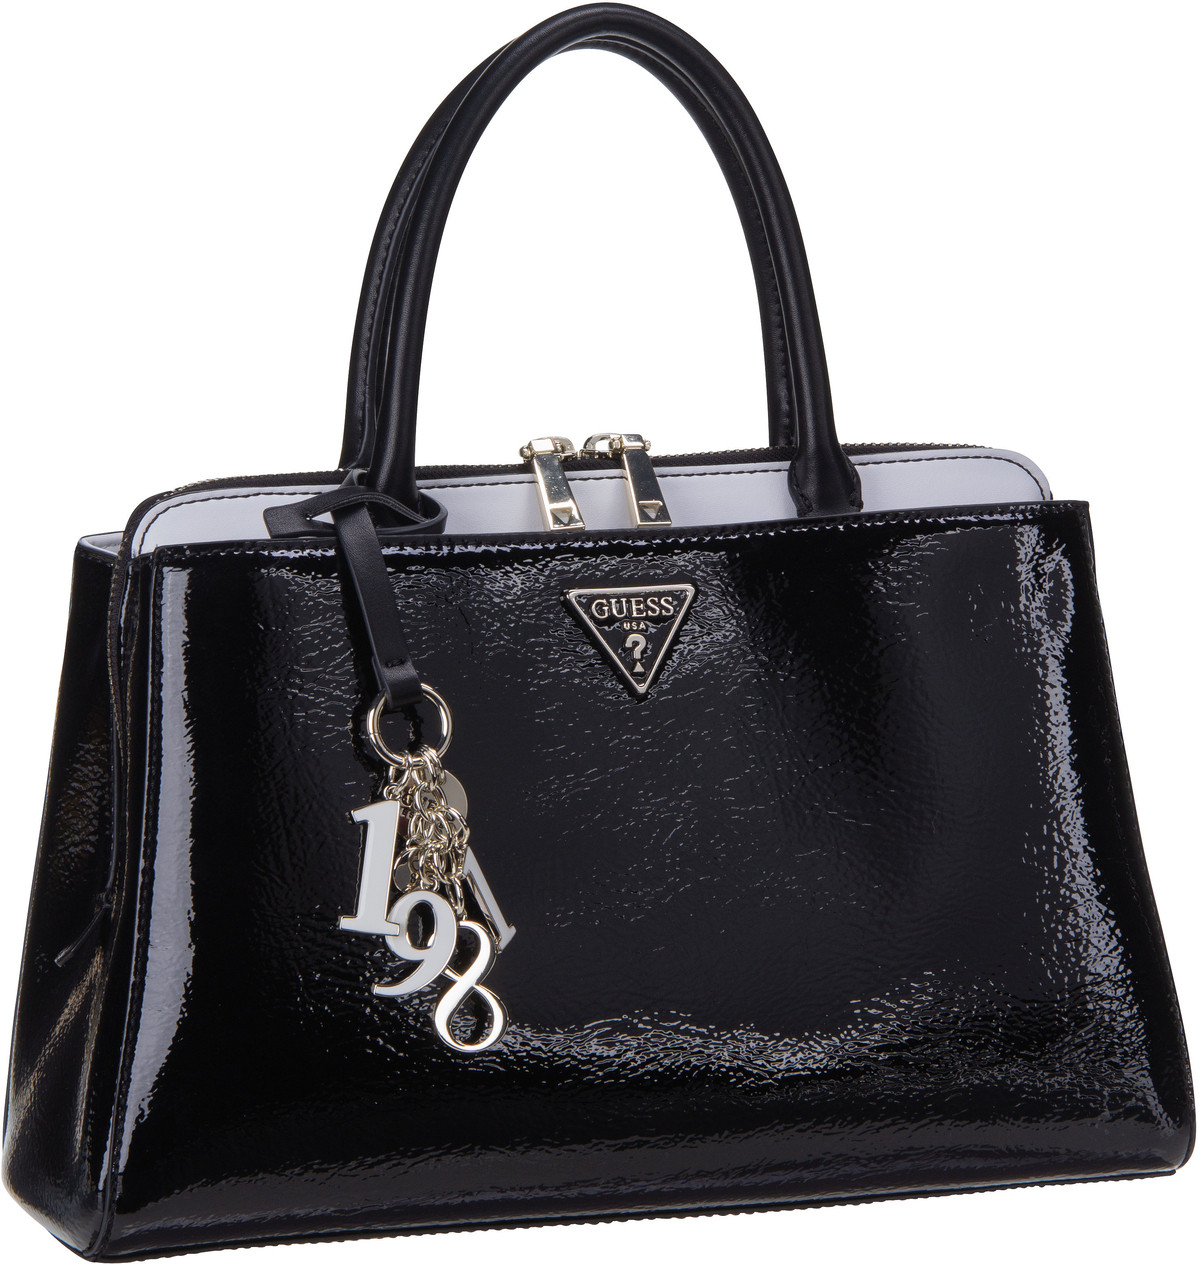 Handtasche Maddy Girlfriend Satchel Black Multi